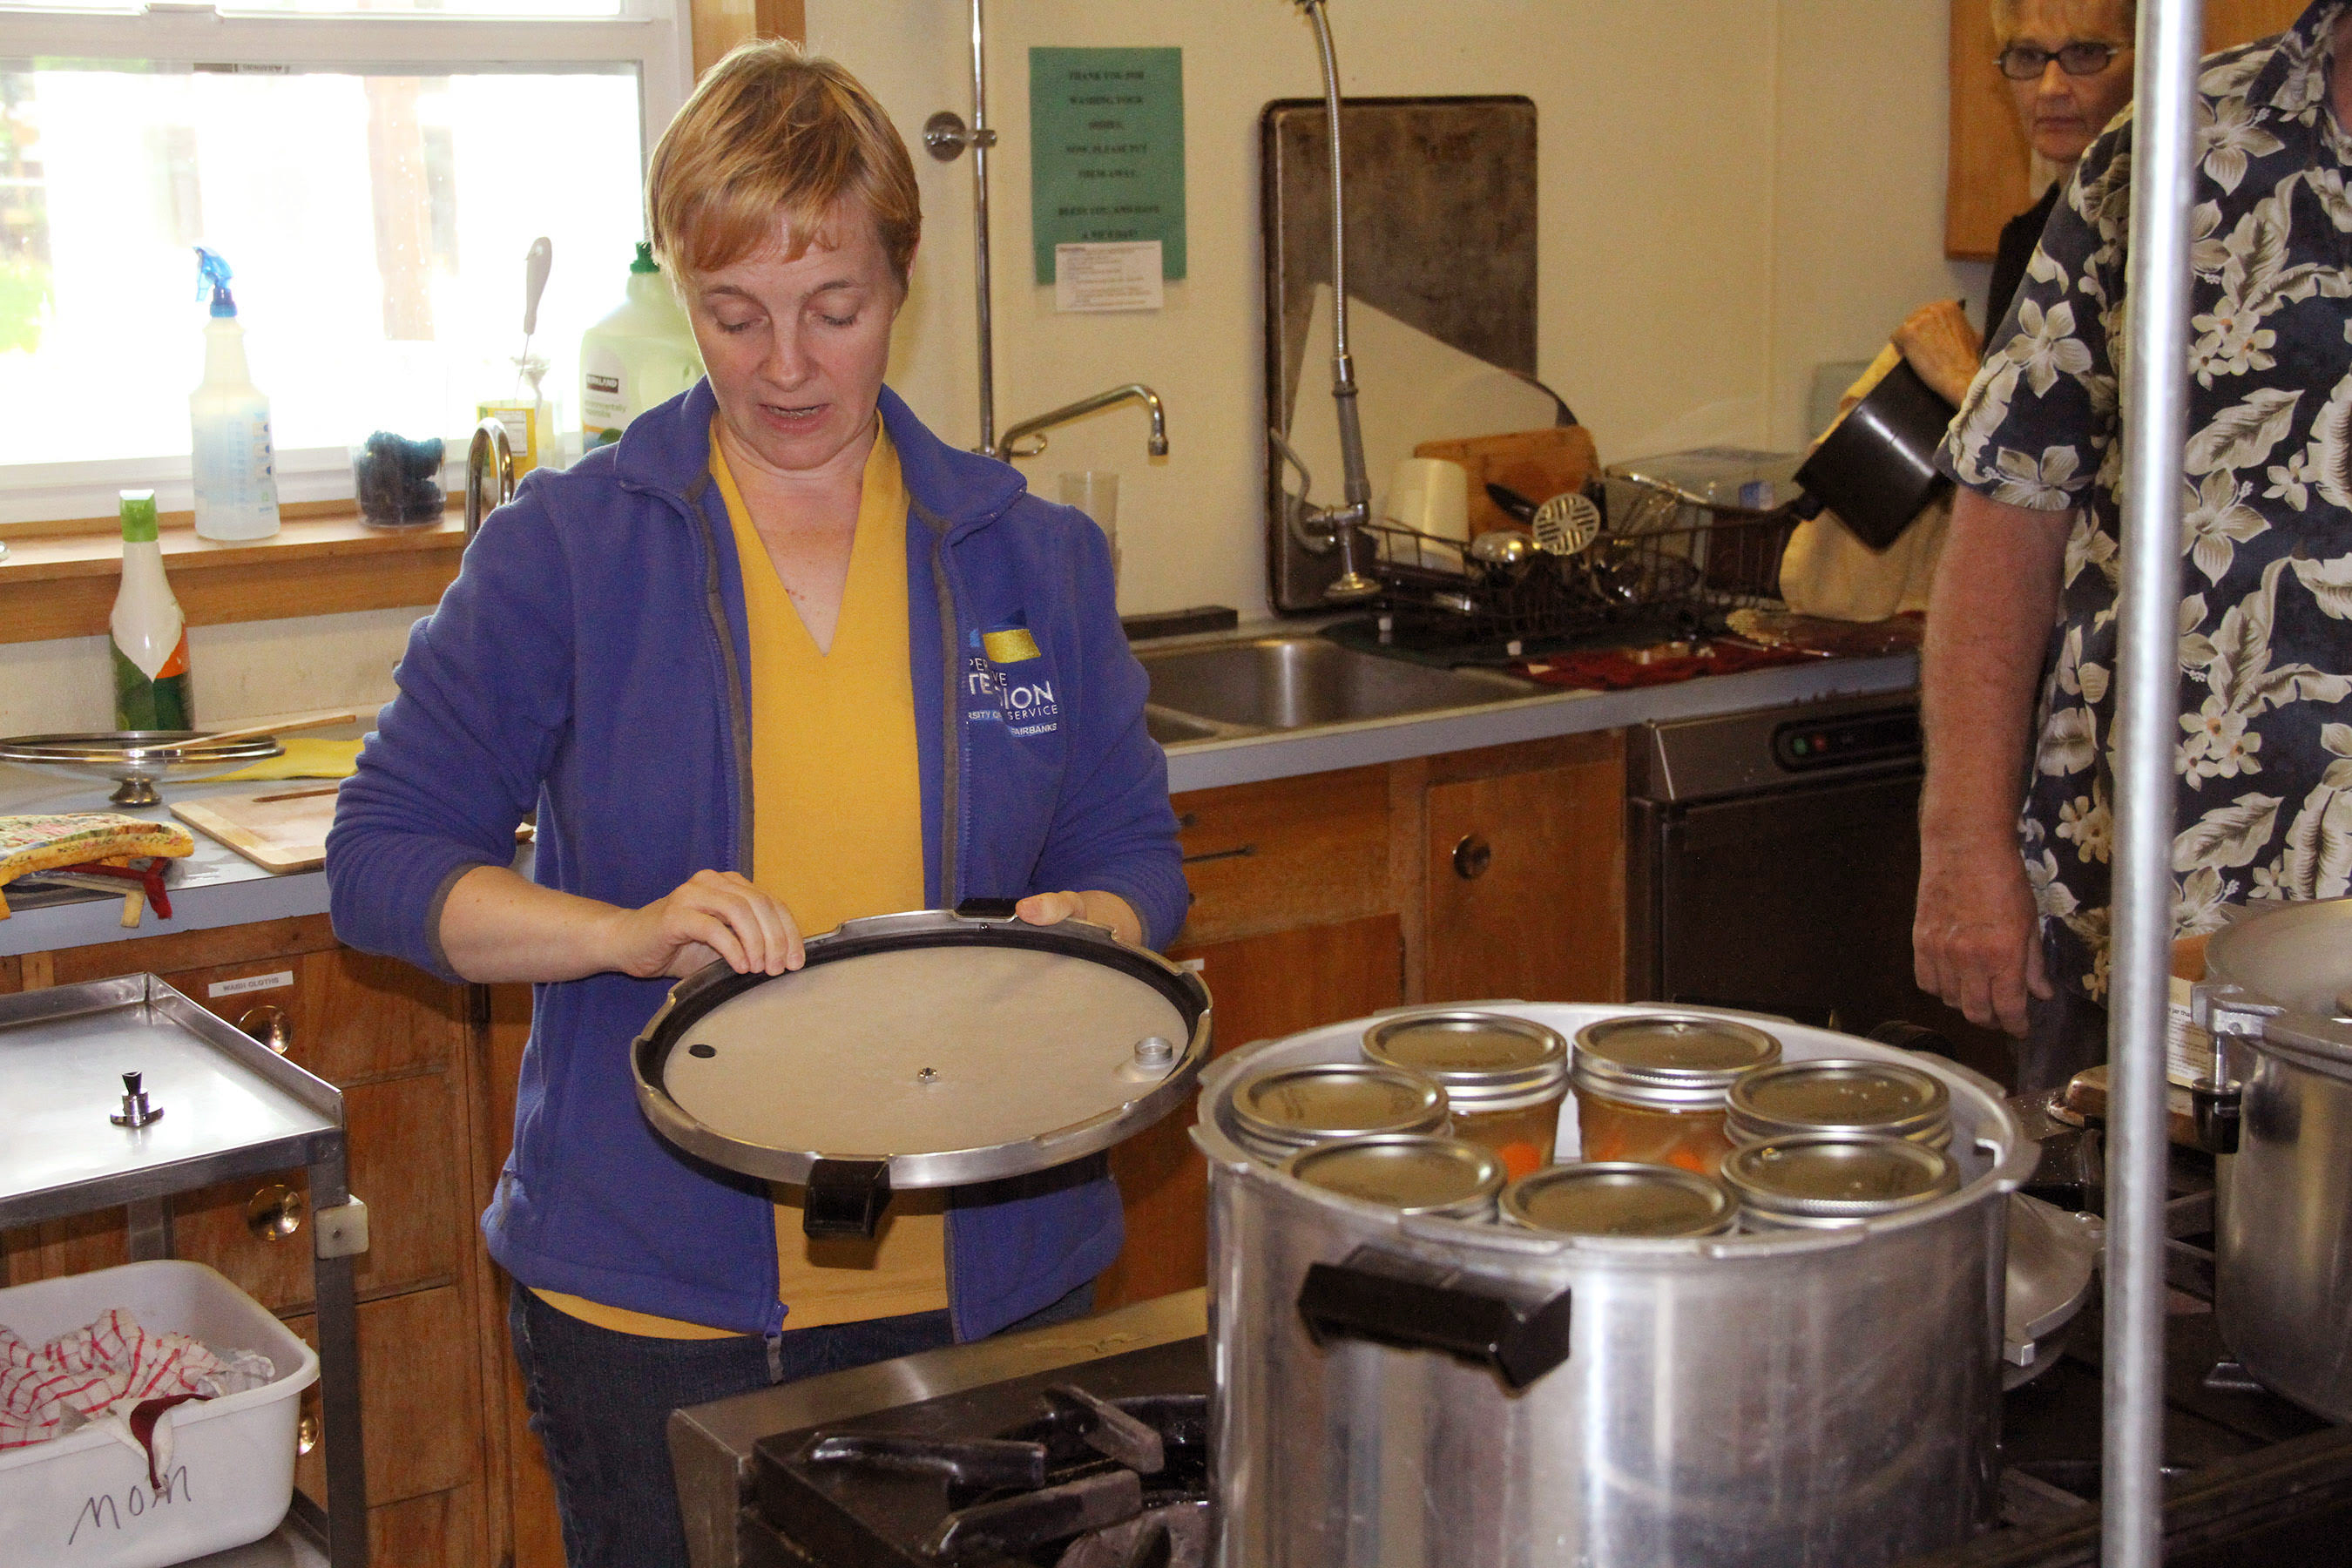 Sarah Lewis teachings about pressure canning